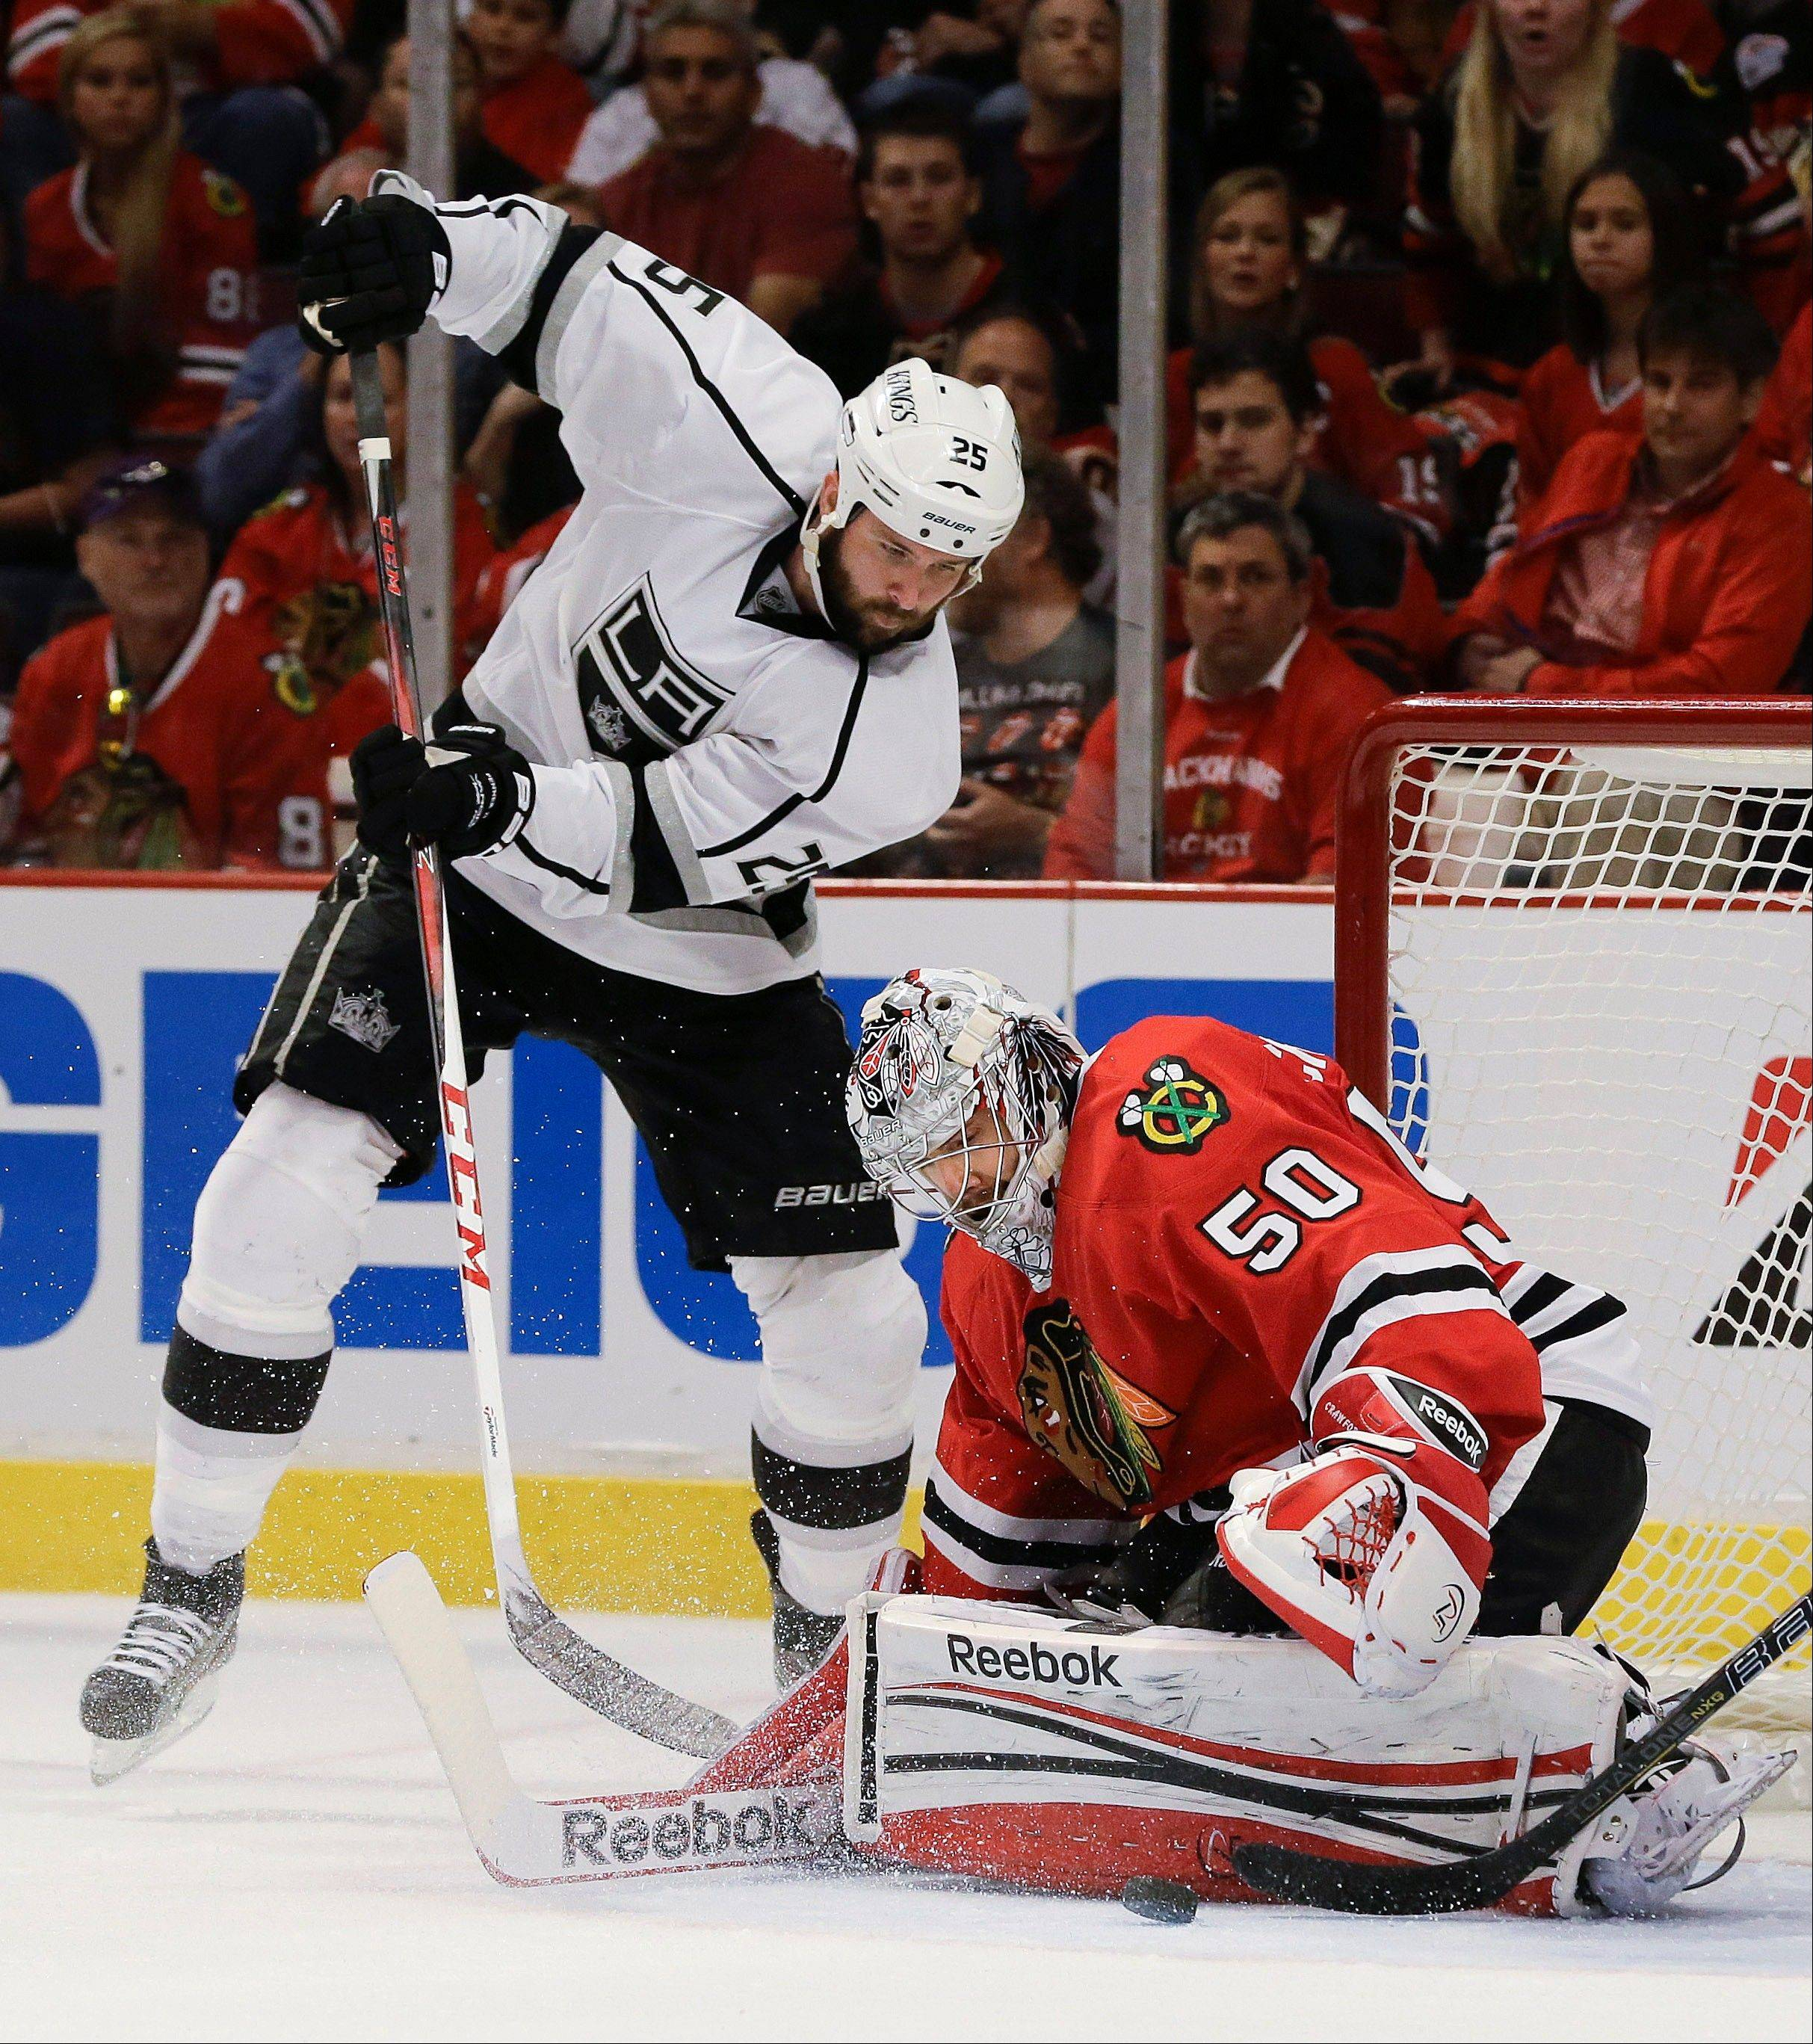 Chicago Blackhawks goalie Corey Crawford (50) blocks a shot attempt by Los Angeles Kings left wing Dustin Penner (25) during the third period of Game 1 of the NHL hockey Stanley Cup Western Conference finals, Saturday, June 1, 2013, in Chicago. Chicago won 2-1.